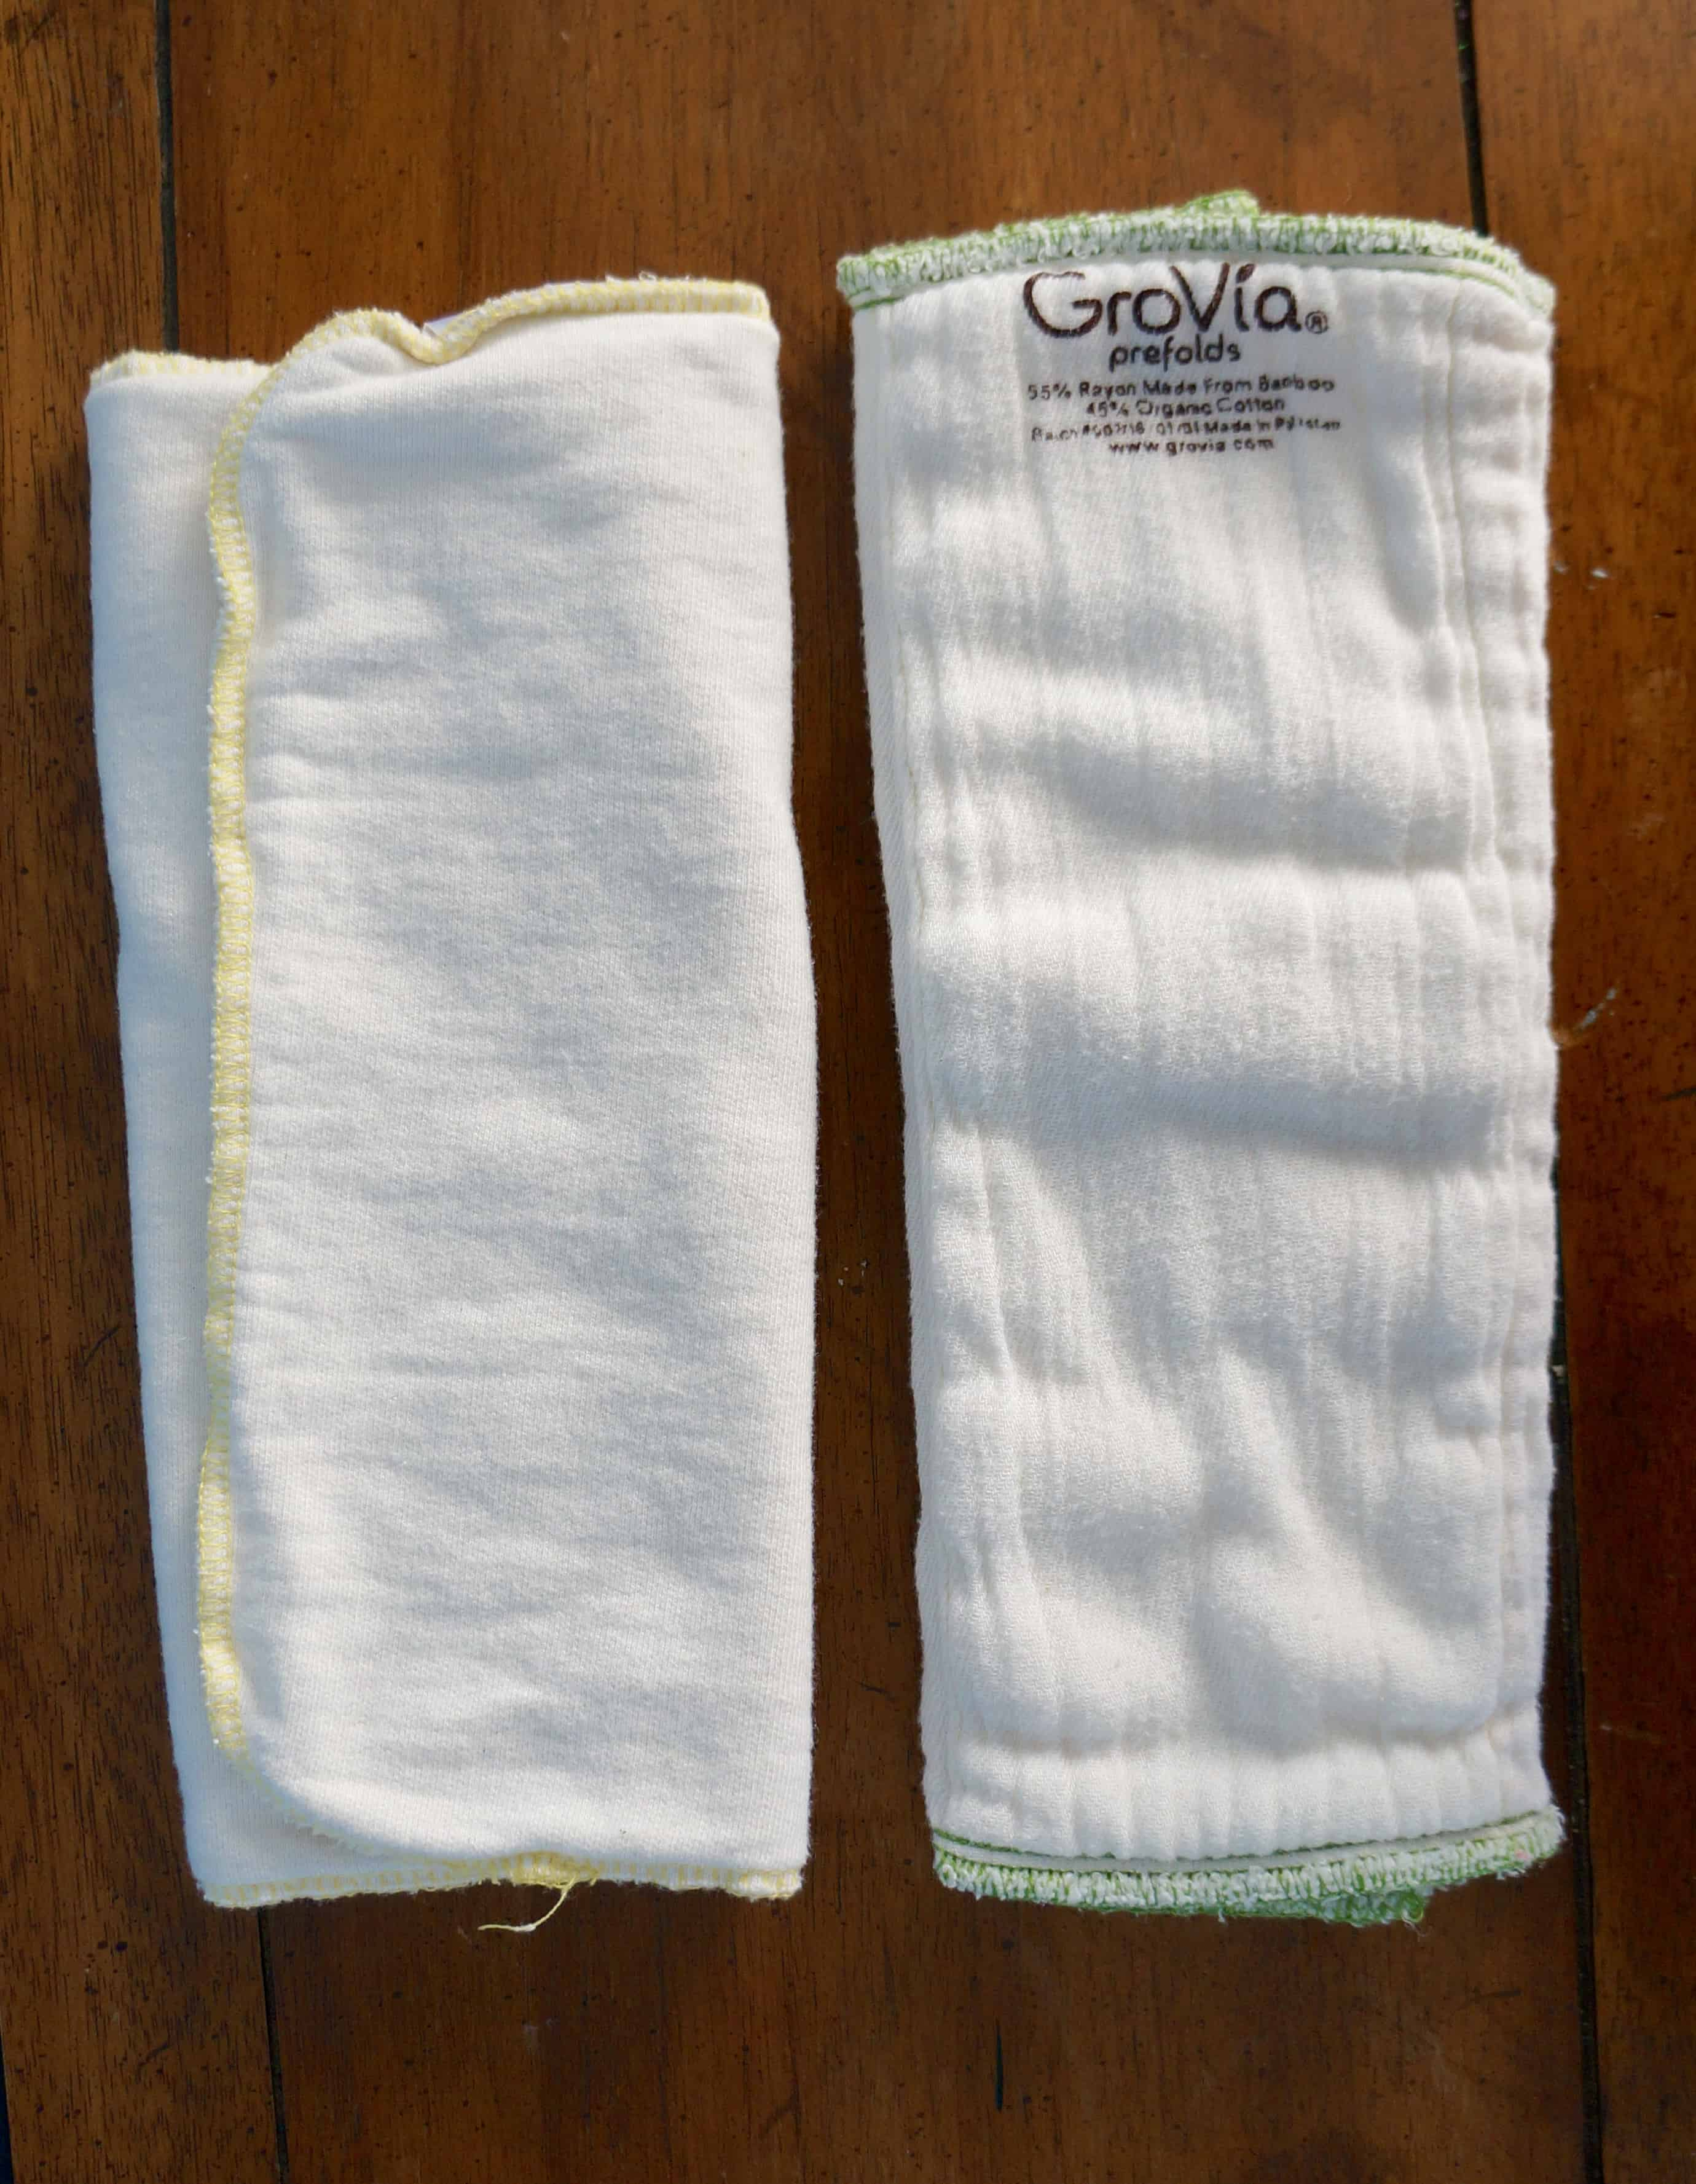 Nuggles! Size 1 Daytime Cotton/Bamboo Insert